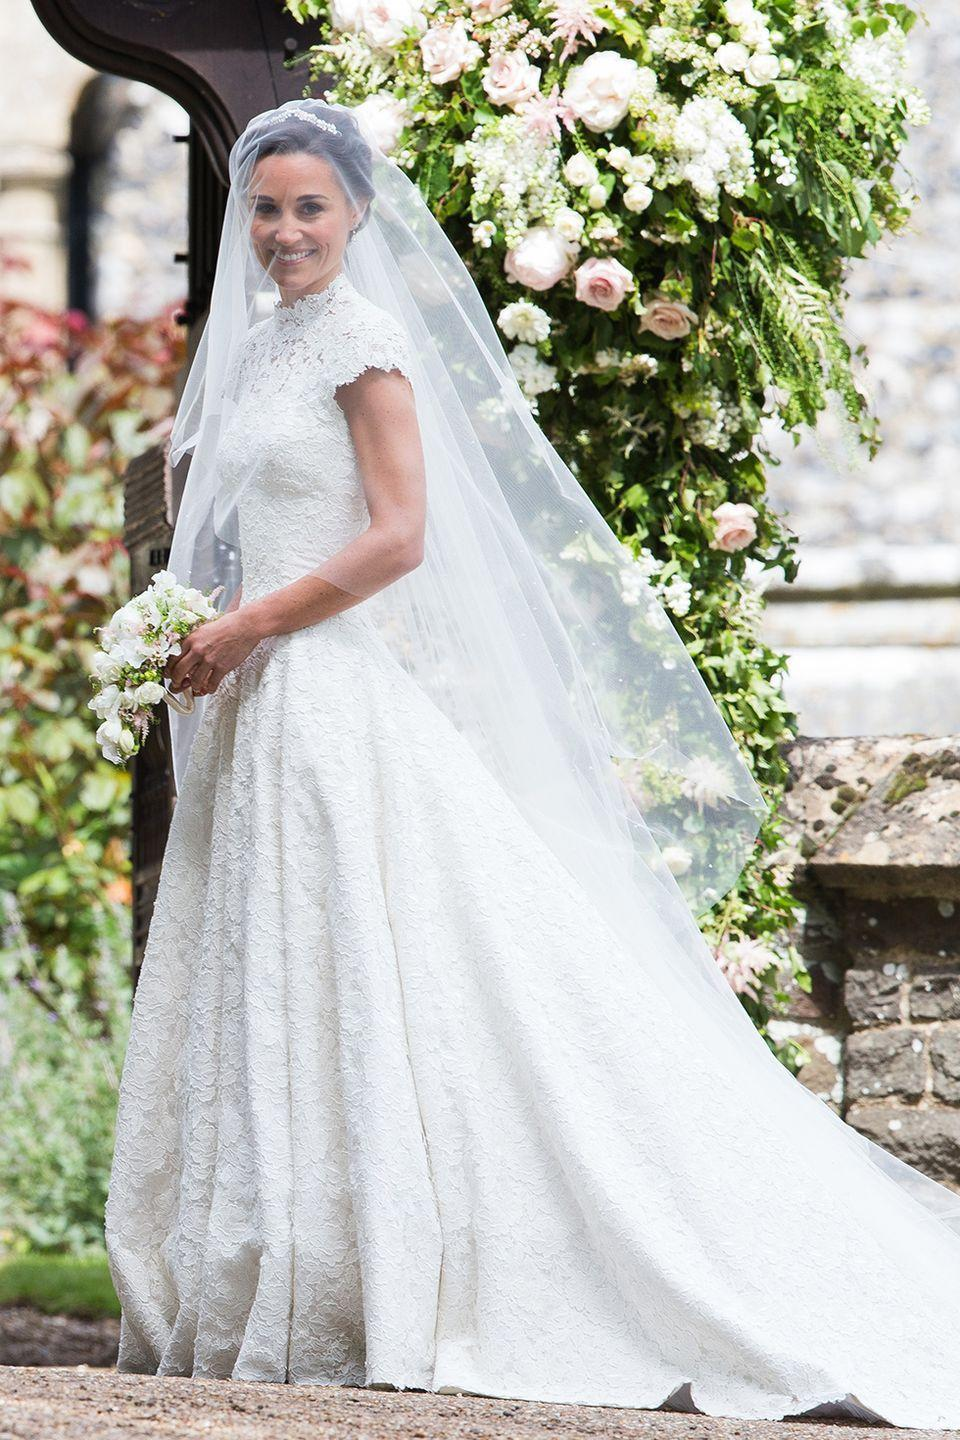 """<p>Pippa wore a custom Giles Deacon wedding gown with short sleeves that showed off her crazy-toned arms. The high lace neck and train drew comparisons to older sister Kate's 2011 wedding gown.</p><p><strong>RELATED</strong>: <a href=""""https://www.goodhousekeeping.com/life/news/g4368/pippa-middleton-wedding-photos/"""" rel=""""nofollow noopener"""" target=""""_blank"""" data-ylk=""""slk:Pippa Middleton's Wedding in Photos"""" class=""""link rapid-noclick-resp"""">Pippa Middleton's Wedding in Photos</a></p>"""